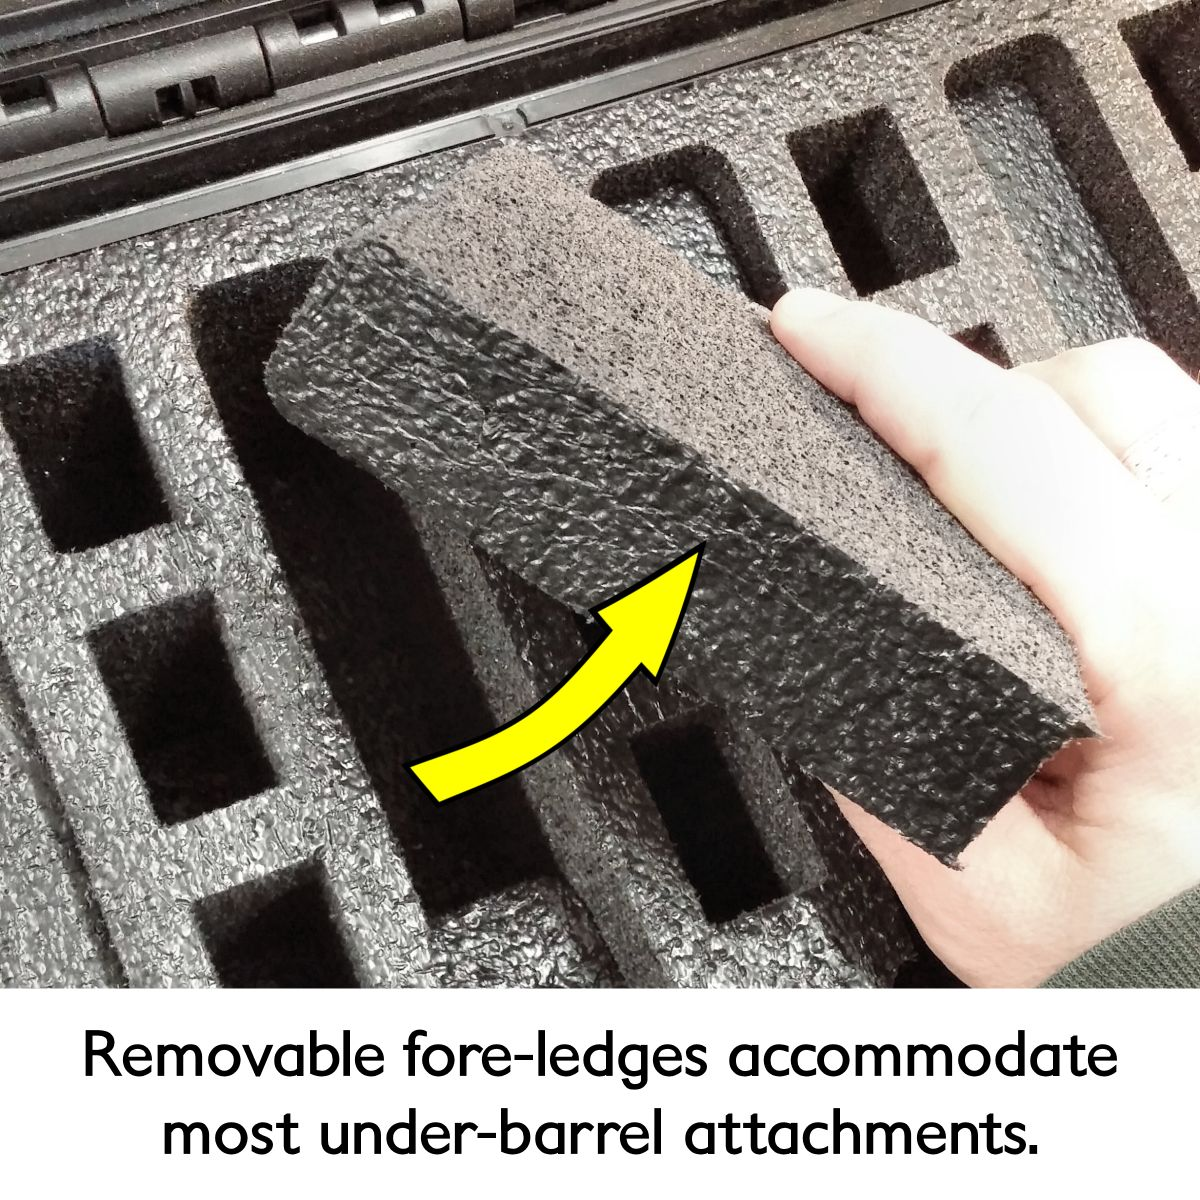 AG-D16116-0518PGD Removable fore-ledges accommodate most under-barrel attachments